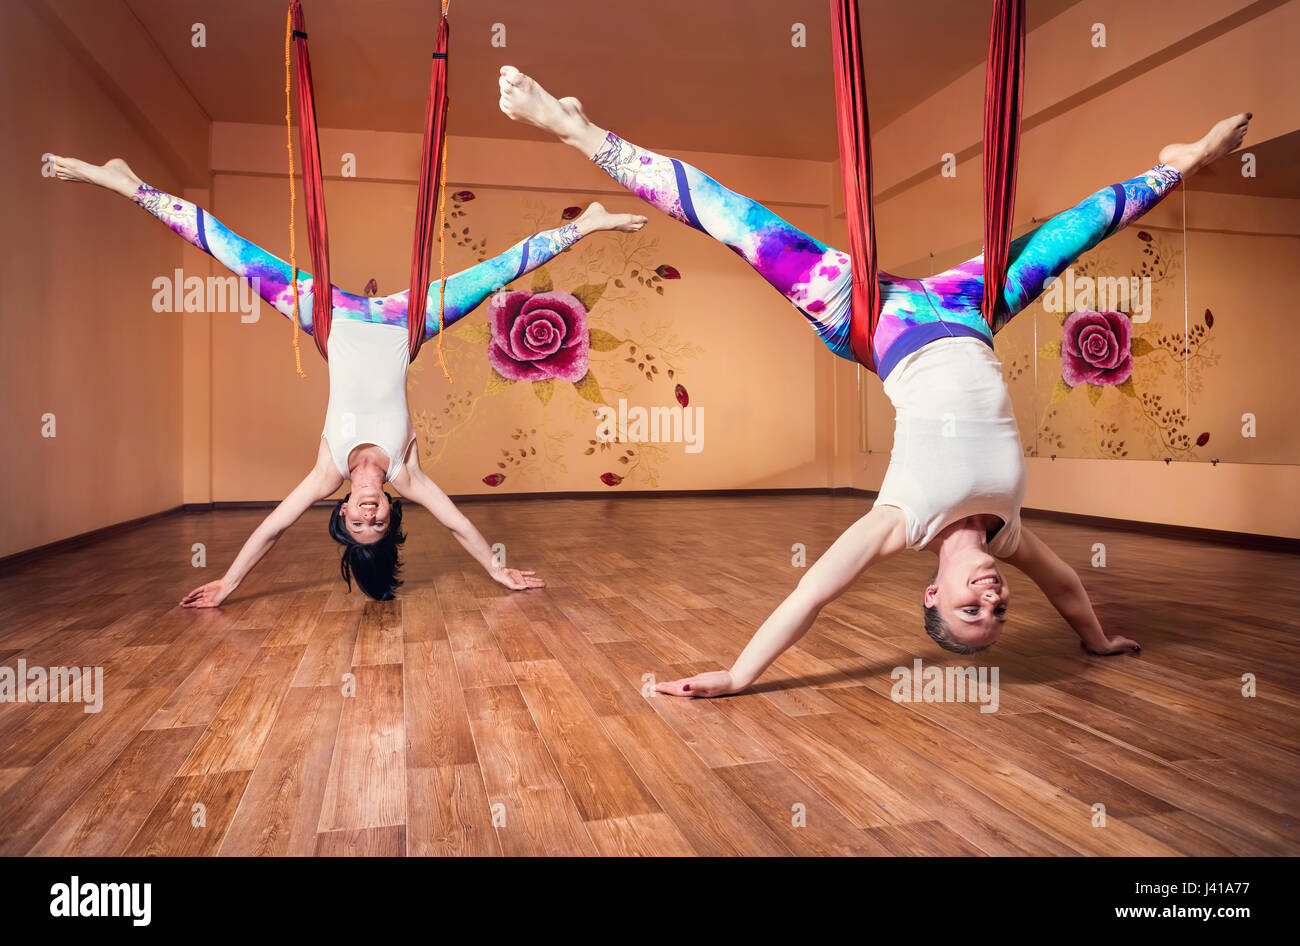 Two Young woman doing antigravity yoga inverted position at wellness studio with rose on the wall - Stock Image